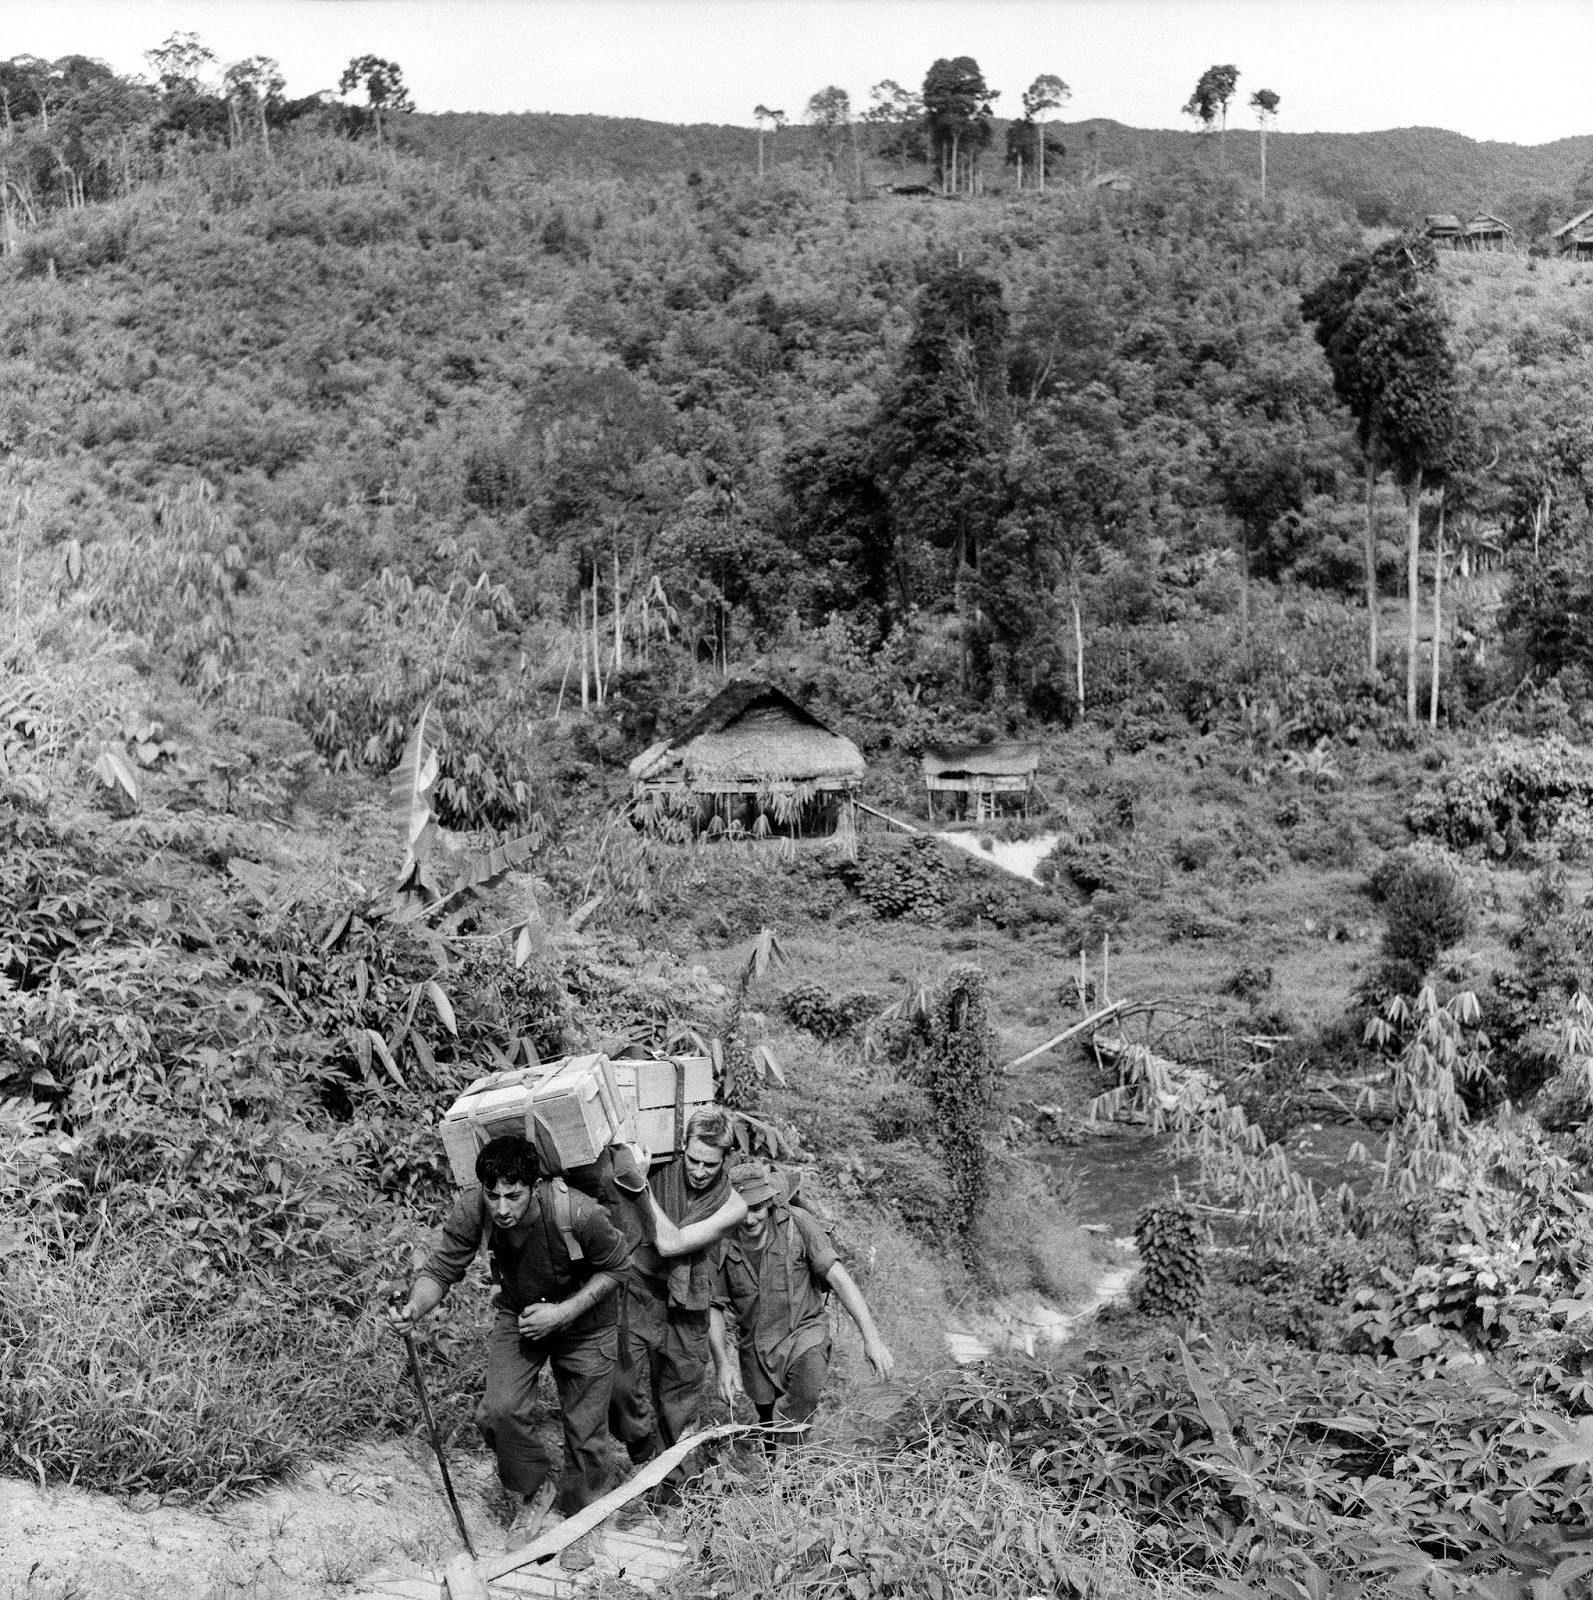 history of the malayan emergency Police officers question a civilian during the malayan emergency stay up to date on military history news and articles every day: 15,191 happy subscribers.